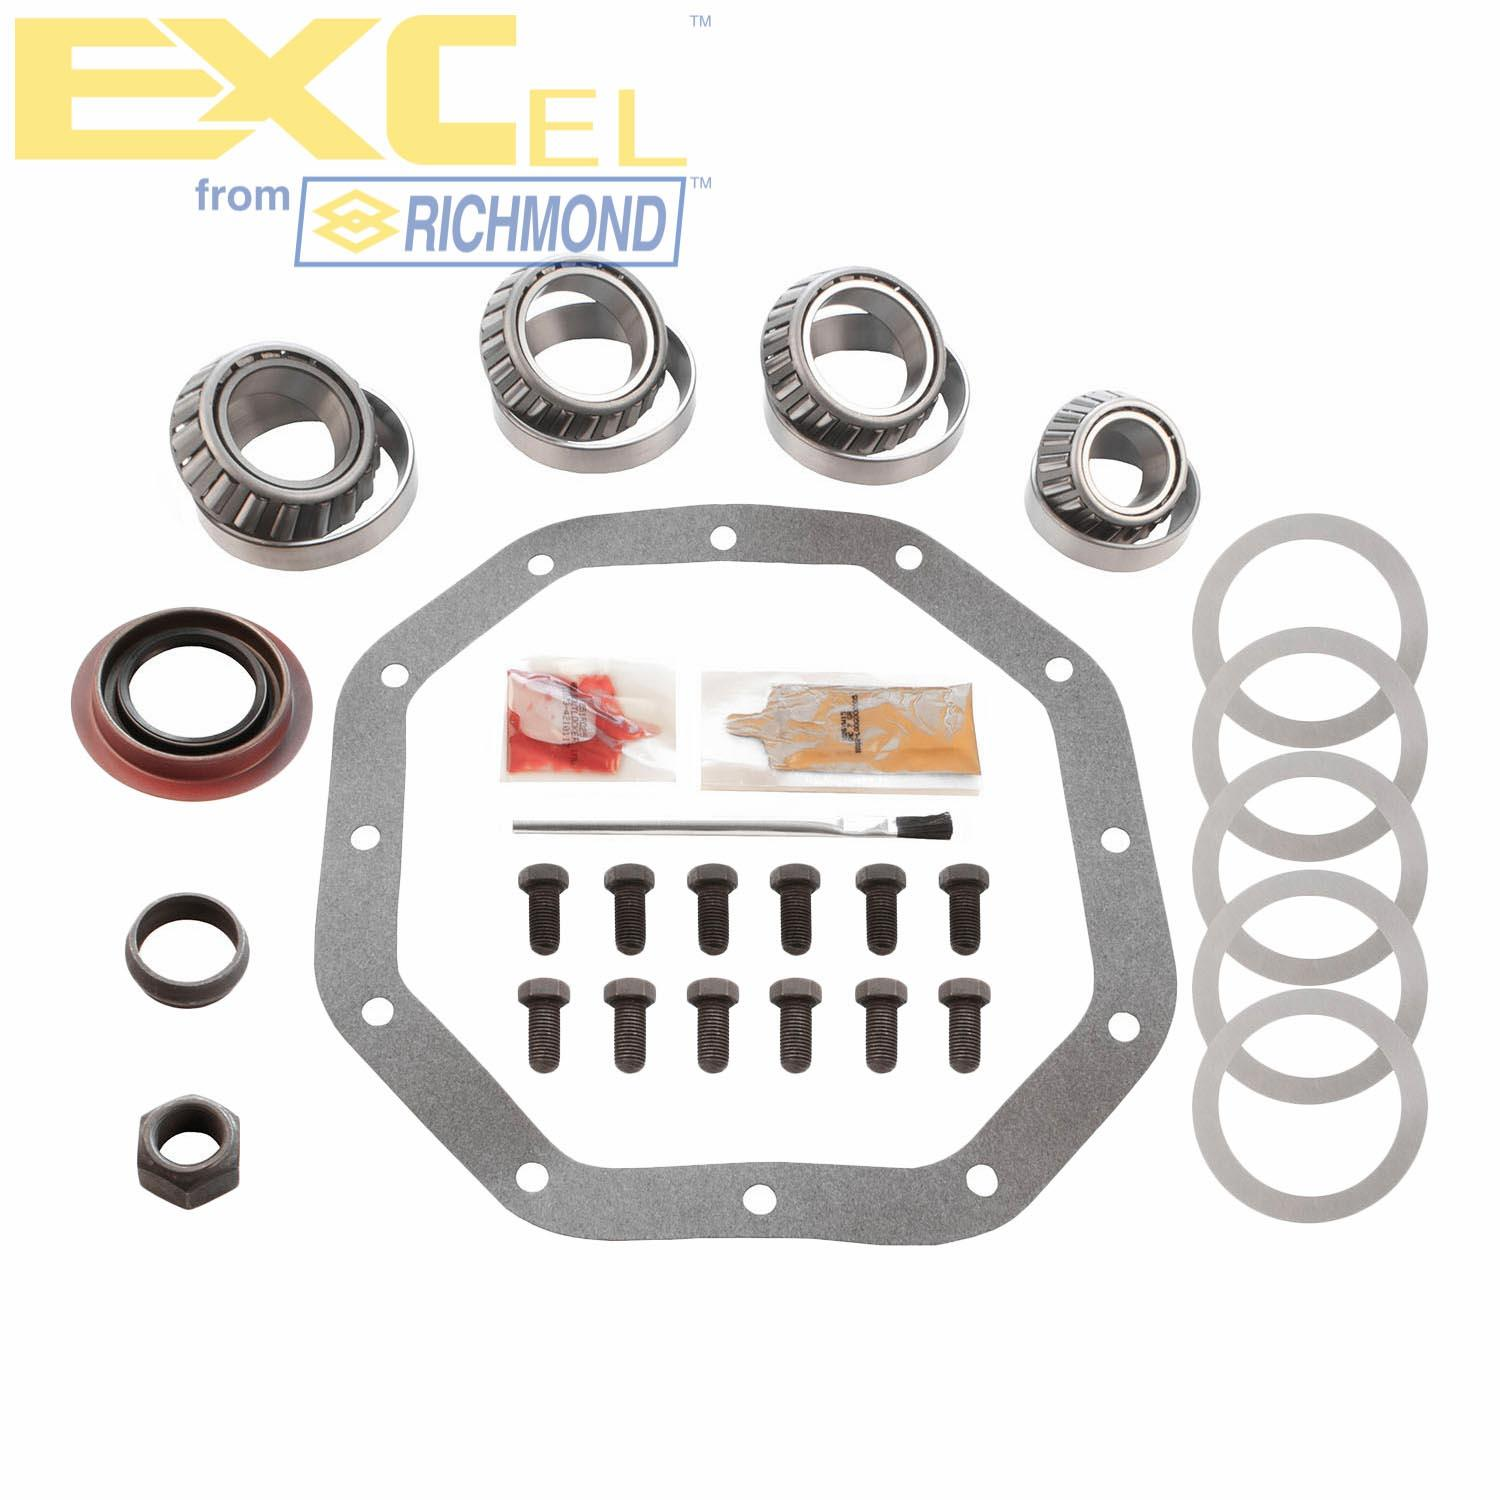 Chrysler 9.25 ExCel XL-1042-1 Ring and Pinion Installation Kit